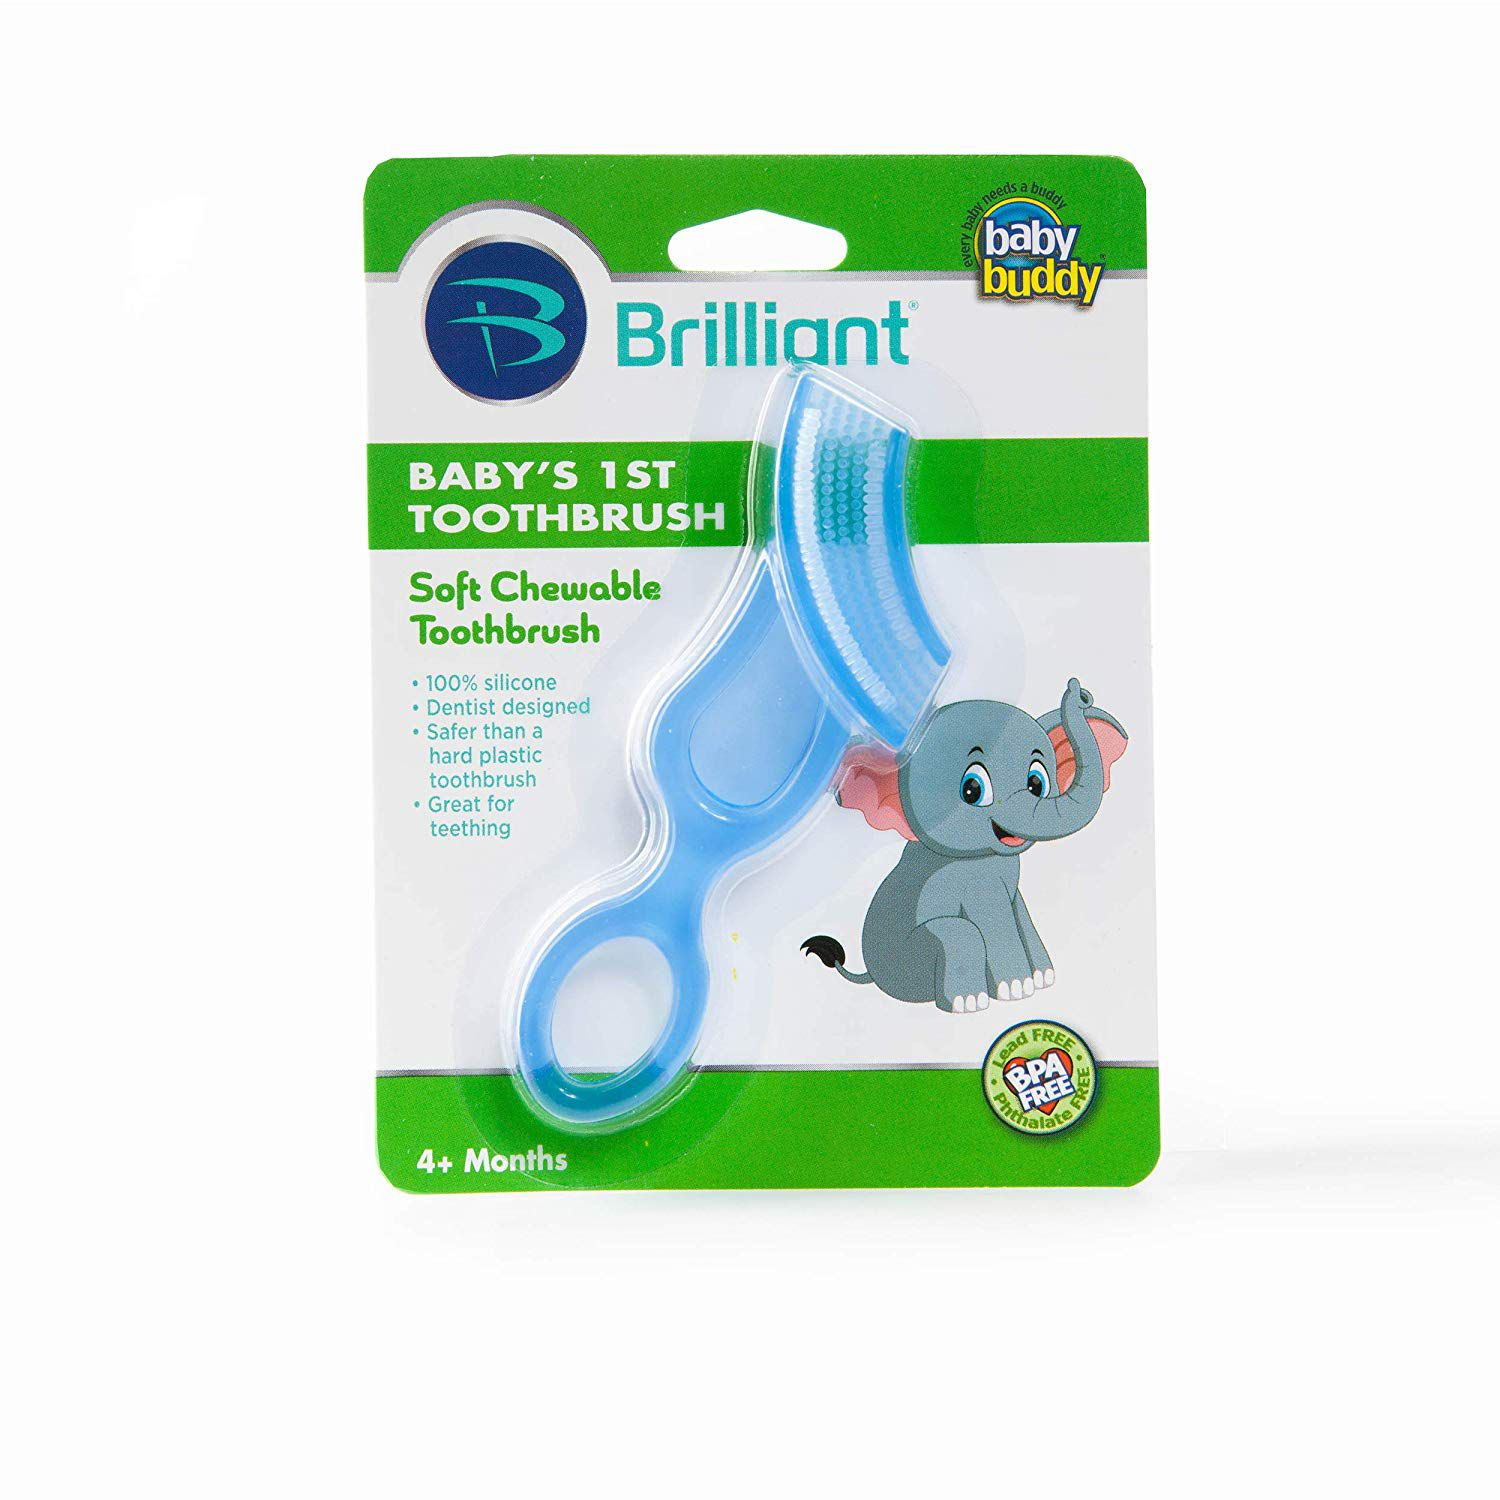 Baby Finger Brush /& First Silicone Toothbrush ~ Set for Toddler Teething Relief